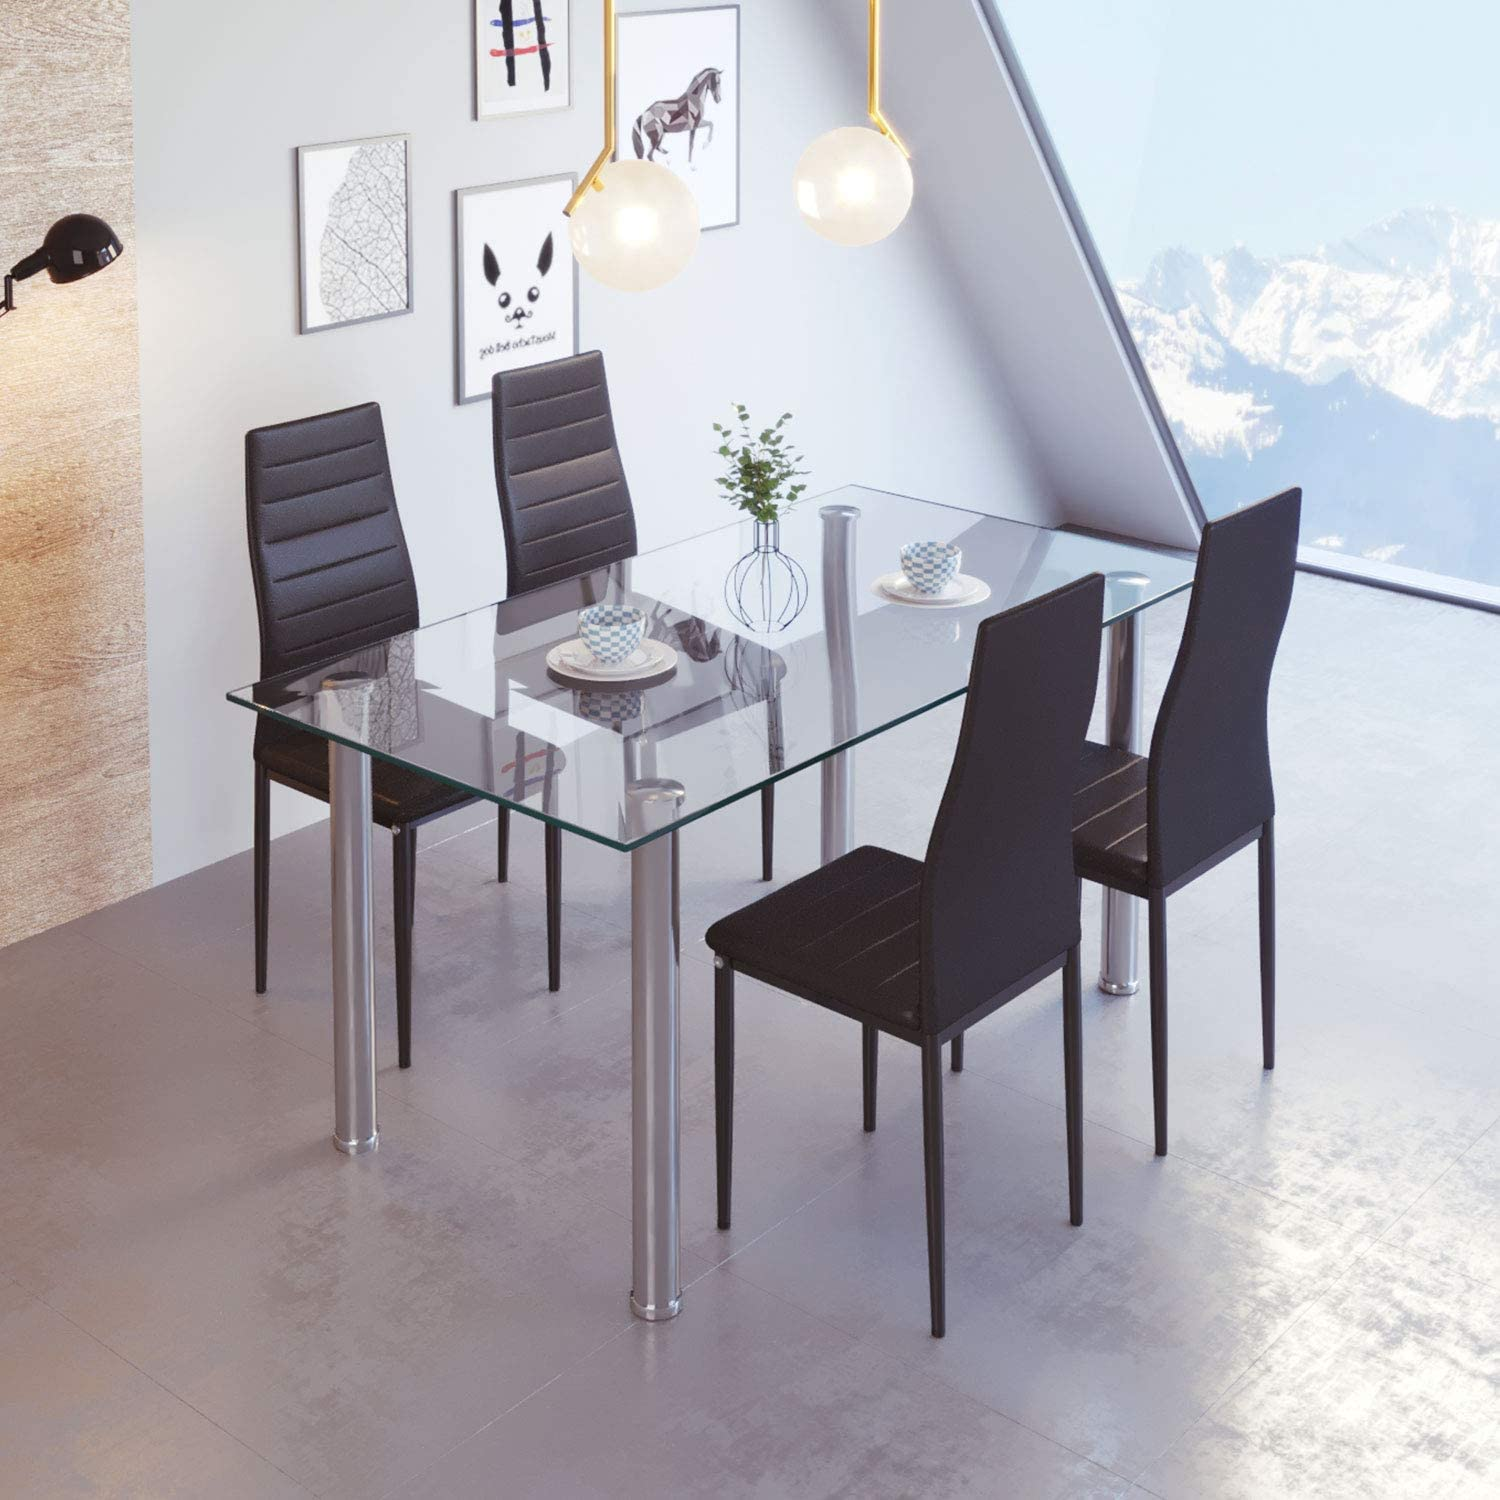 jeffordoutlet Rectangular Dining Table and 9 Black Chairs, High Back PU  Leather Chairs and Tempered Glass Dining Room Set Kitchen Furniture